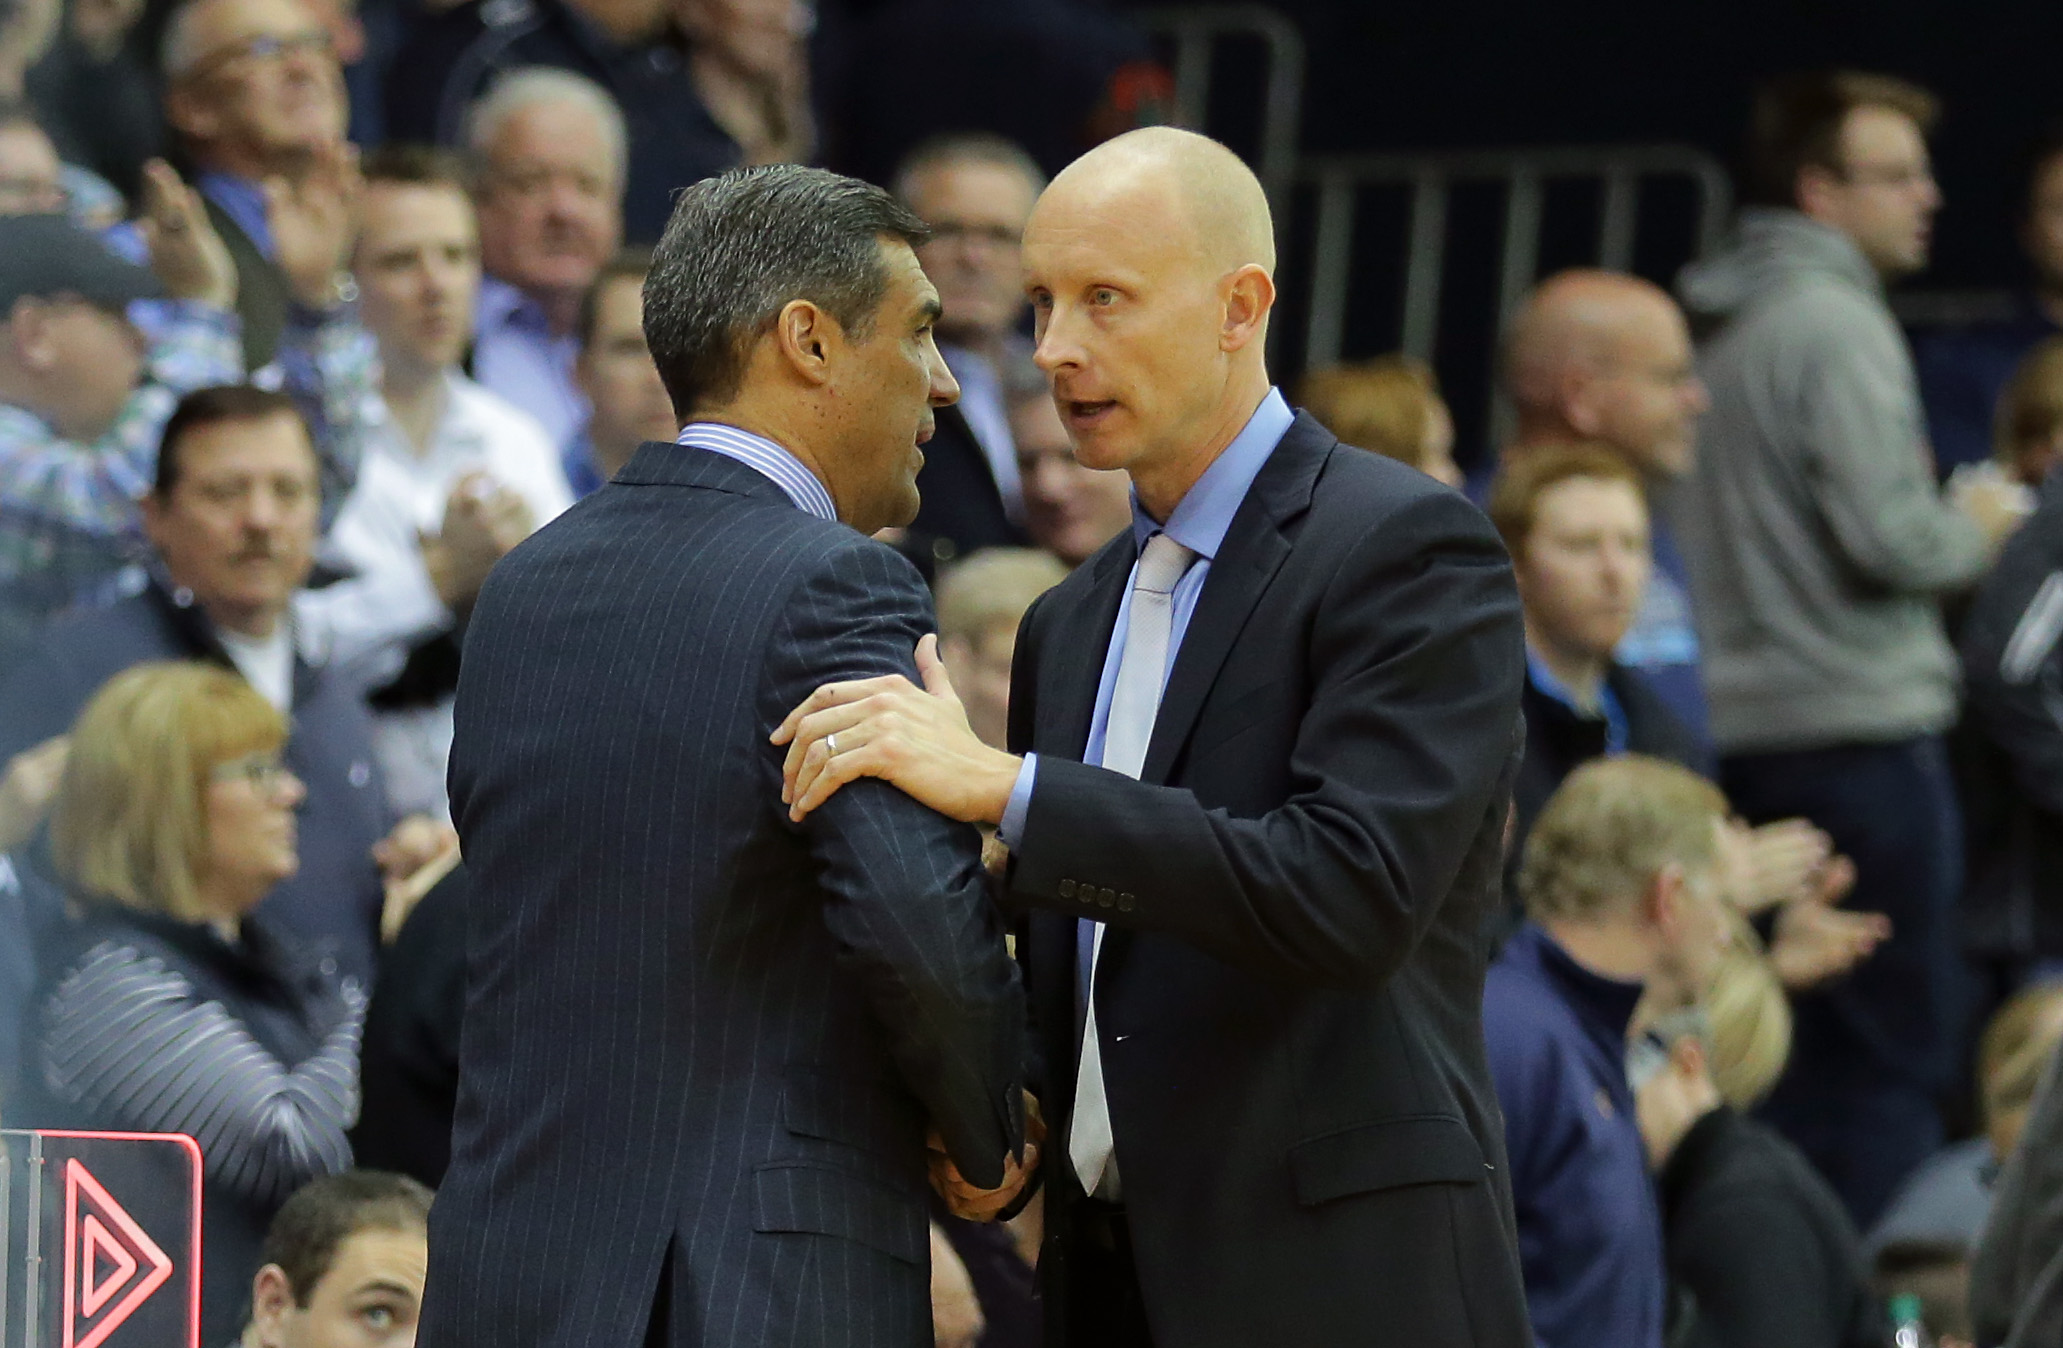 VILLANOVA, PA - DECEMBER 31: Head coach Jay Wright of the Villanova Wildcats shakes hands with head coach Chris Mack of the Xavier Musketeers after a game at the Pavilion on the campus of Villanova University on December 31, 2015 in Philadelphia, Pennsylvania.(Photo by Hunter Martin/Getty Images)